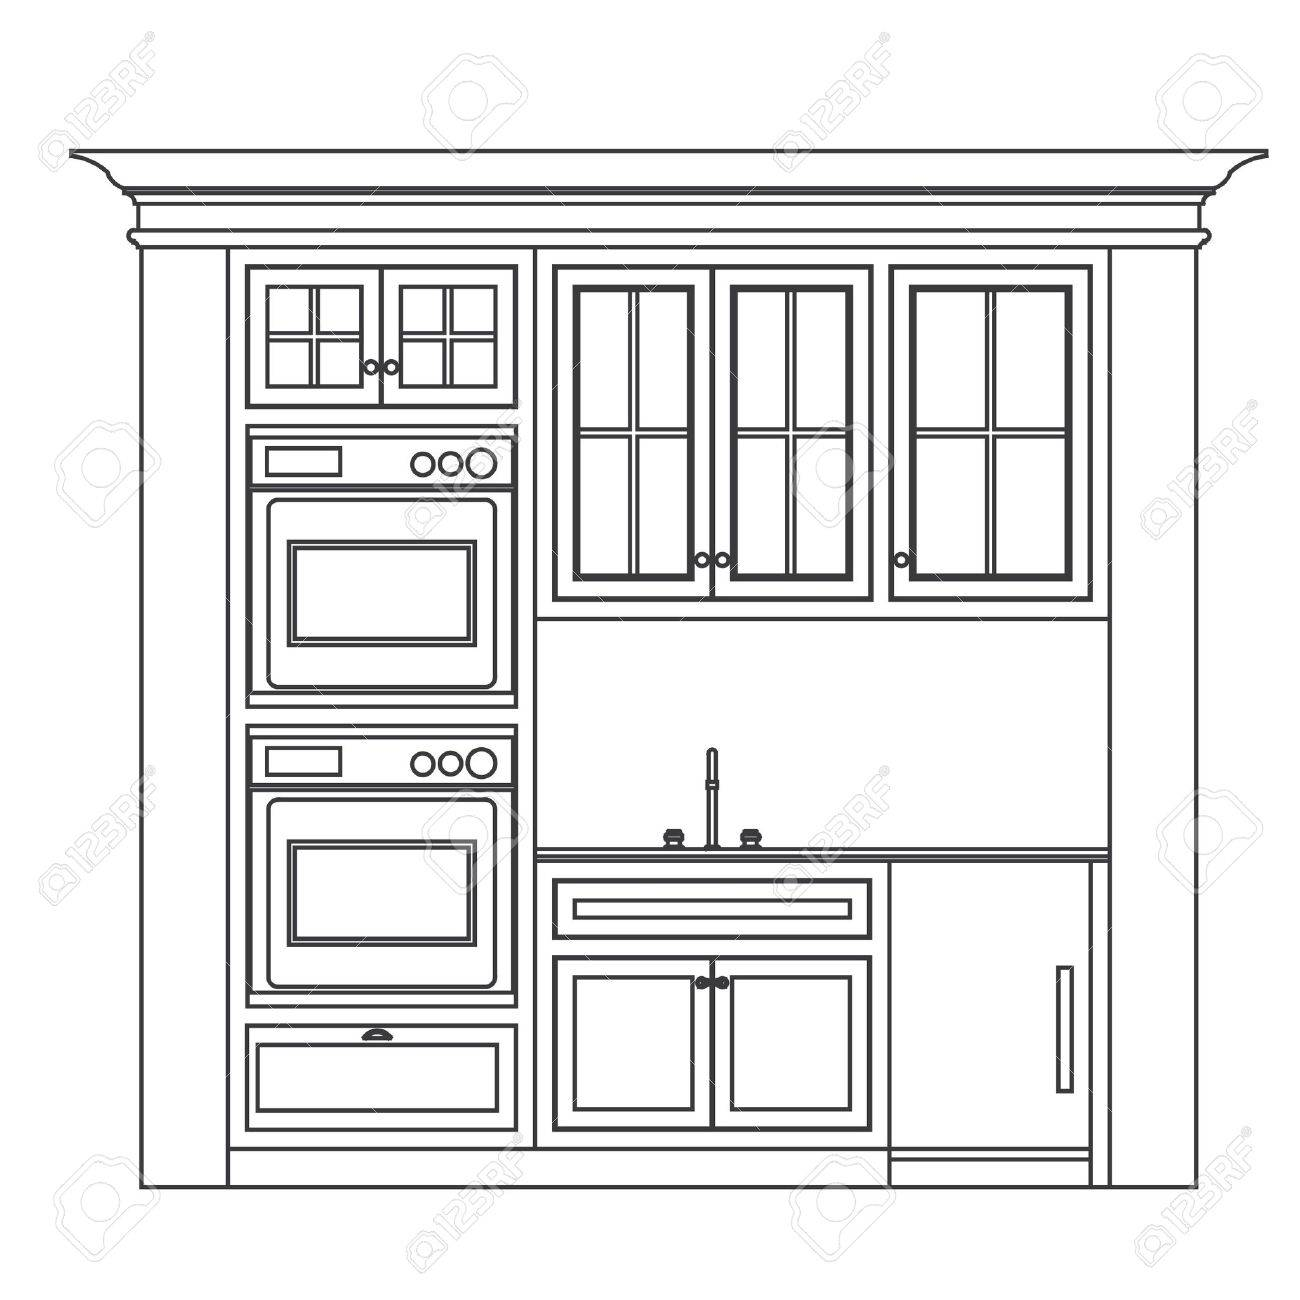 Kitchen Cabinets Elevations kitchen elevation line drawing, cabinets, drawers, appliances